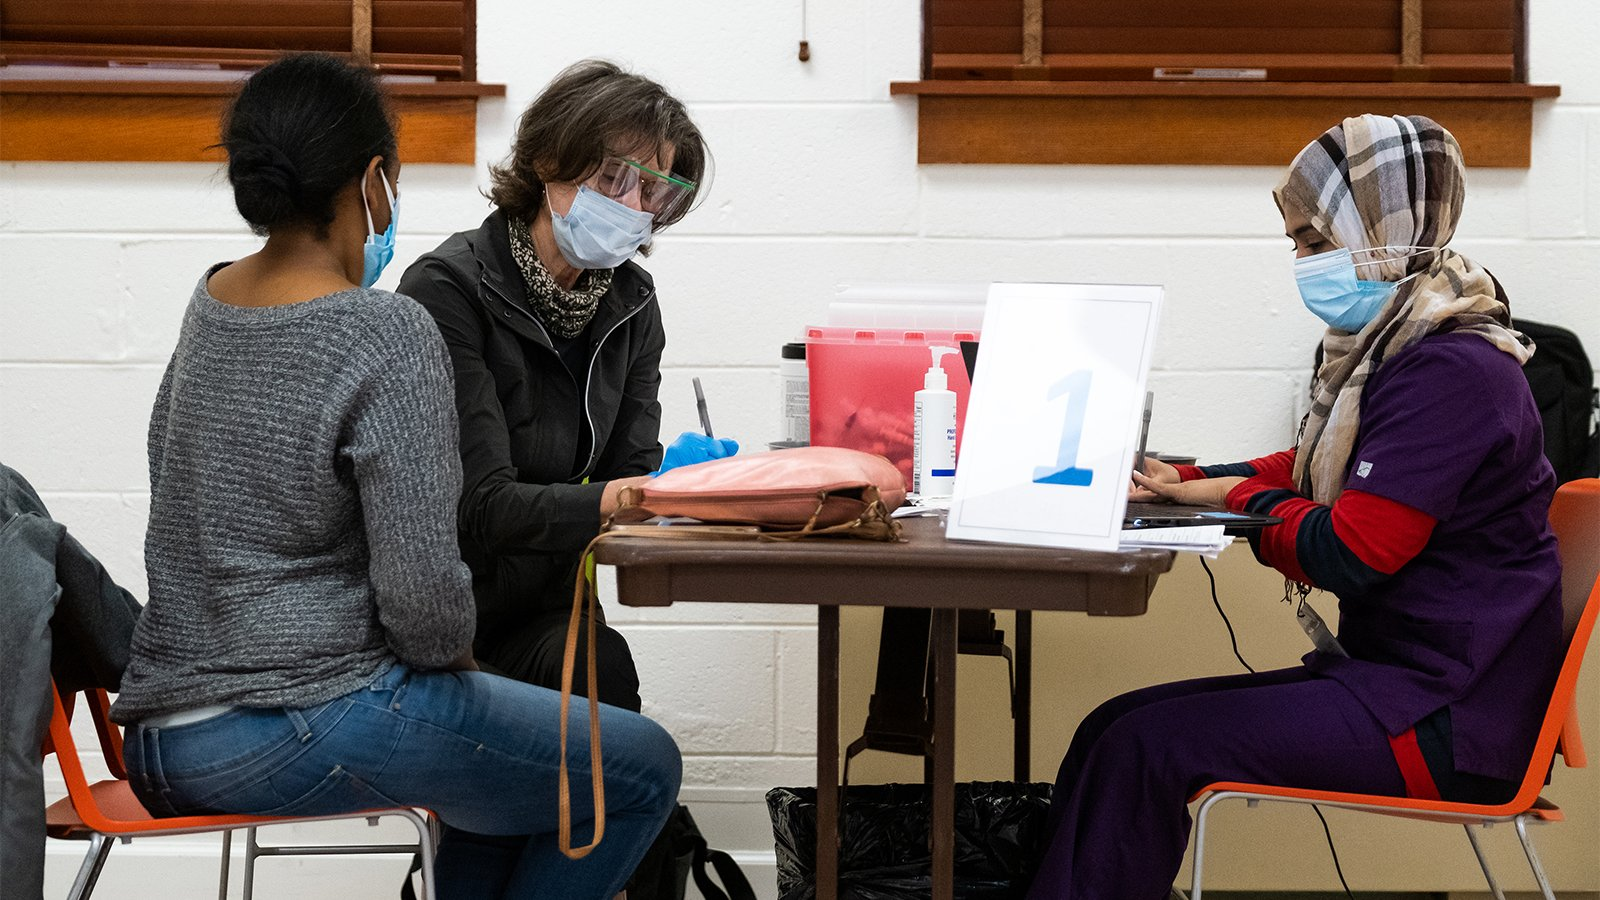 A female patient, left, arrives for the COVID-19 vaccine at a Neighborhood Health vaccination site at Alfred Street Baptist Church in Alexandria, Virginia, April 5, 2021. Photo courtesy of Neighborhood Health